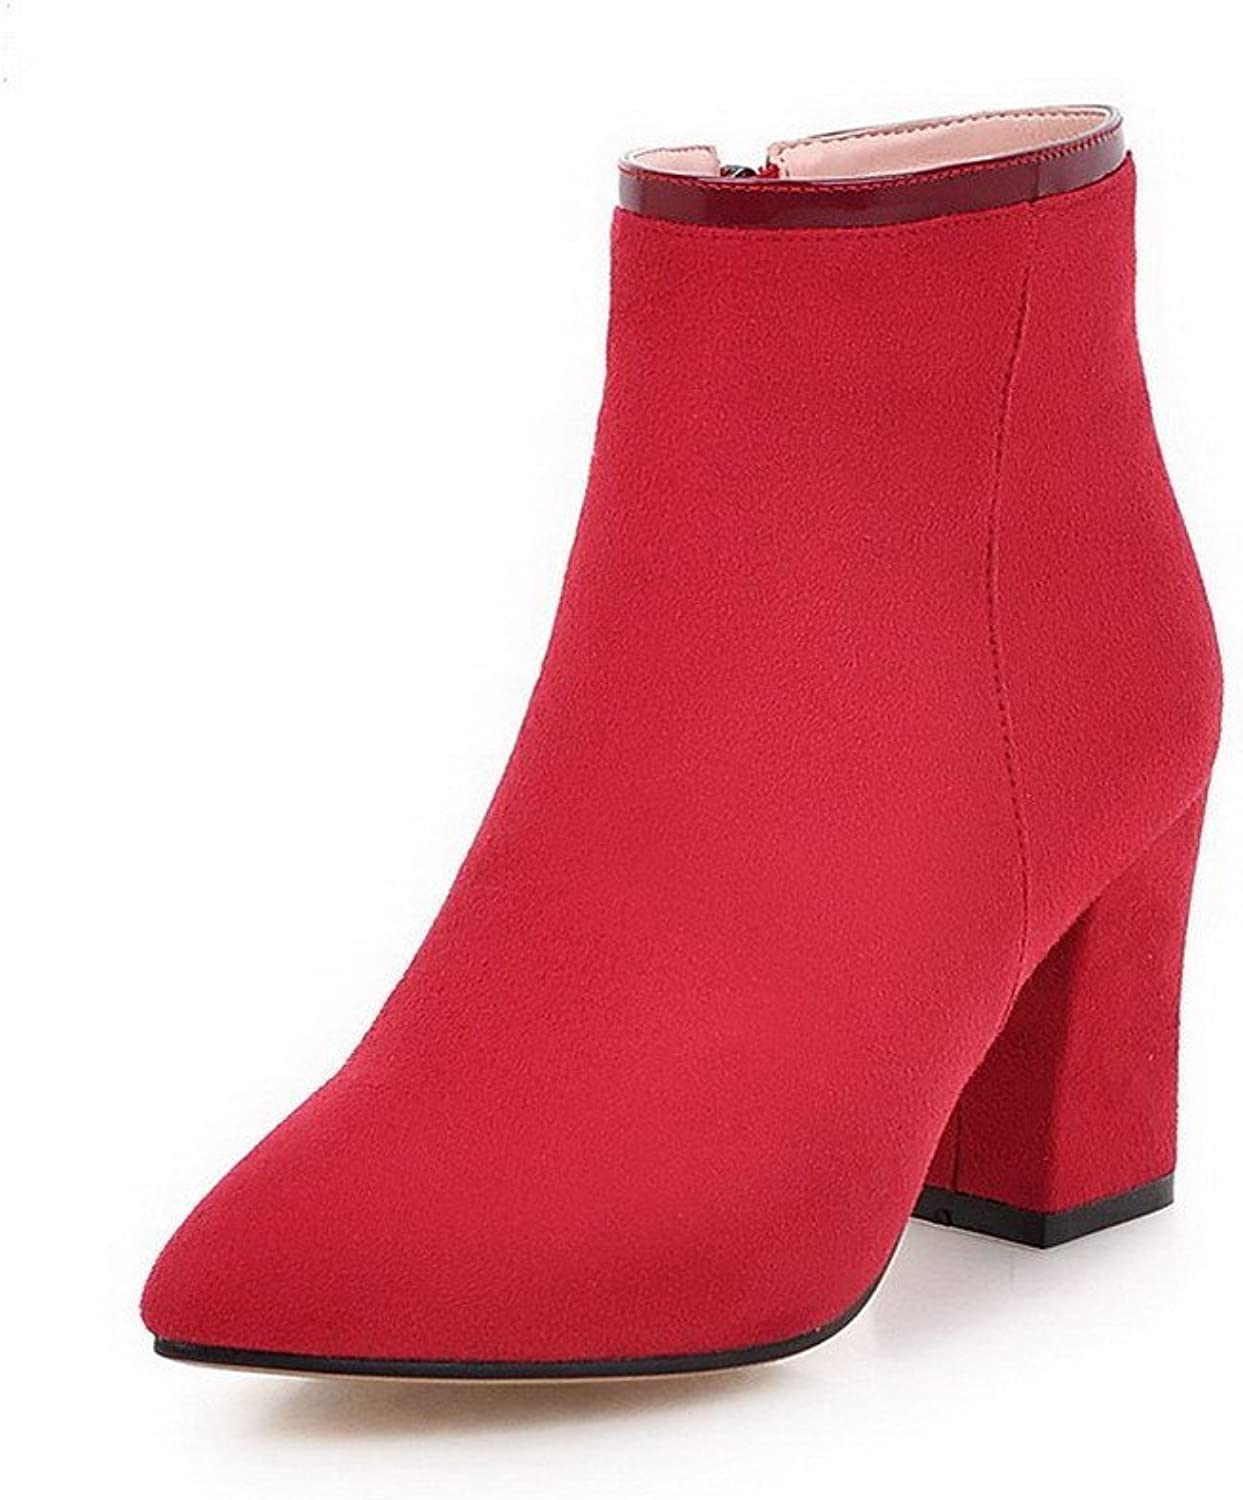 AmoonyFashion Women's Fabric Surface Low-top Solid Zipper High-Heels Boots